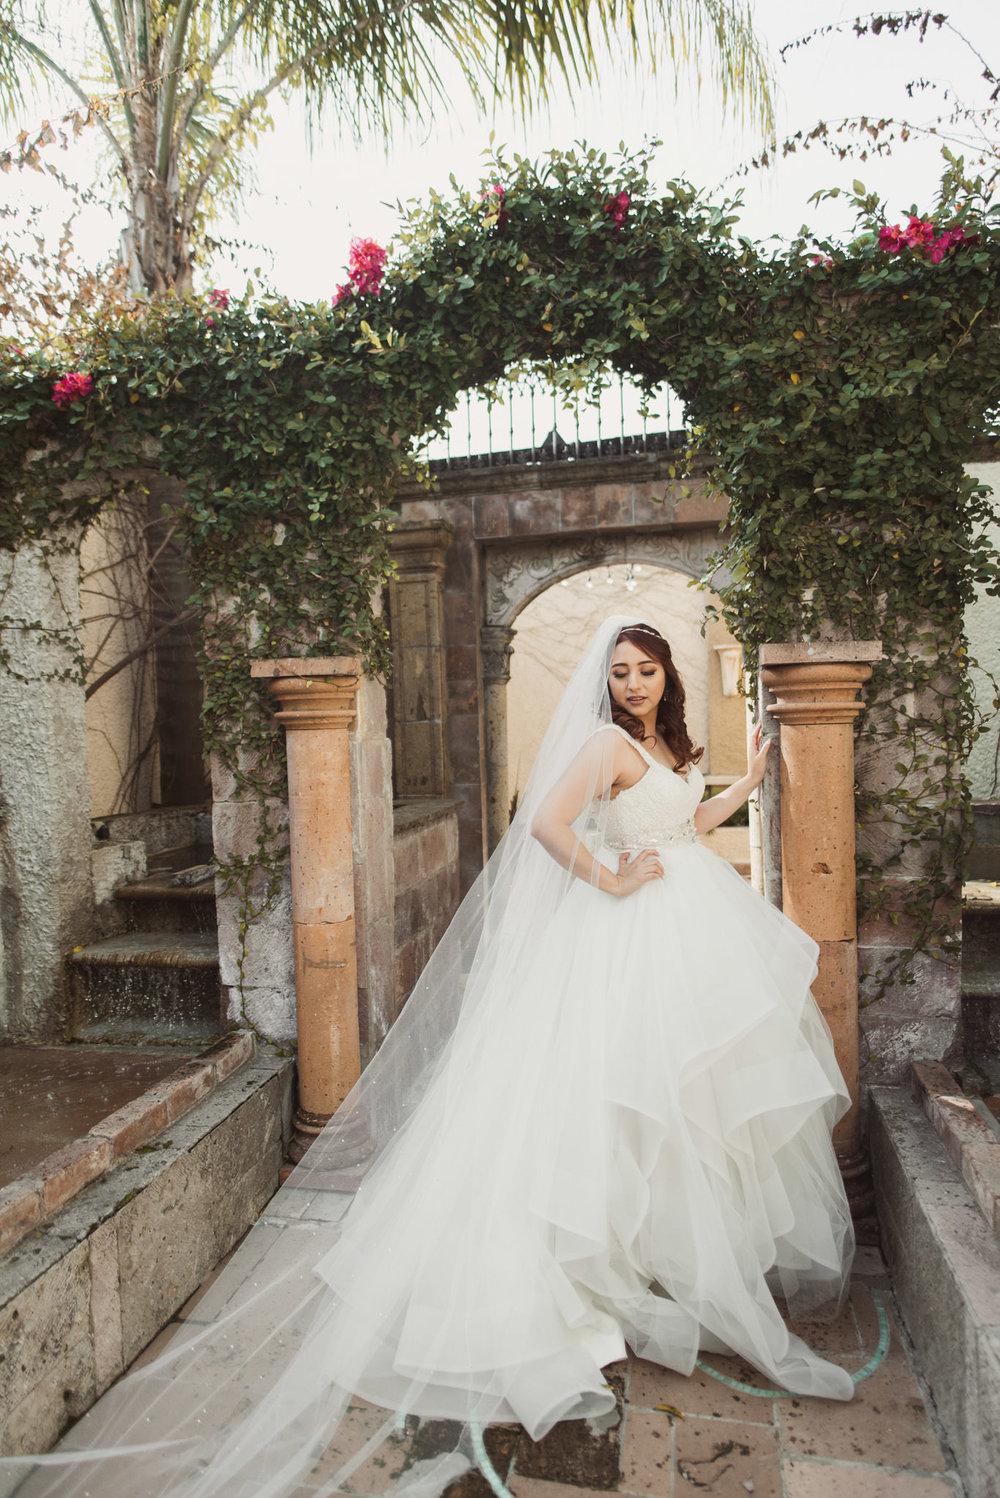 stephanie-bridal-sm-16.jpg